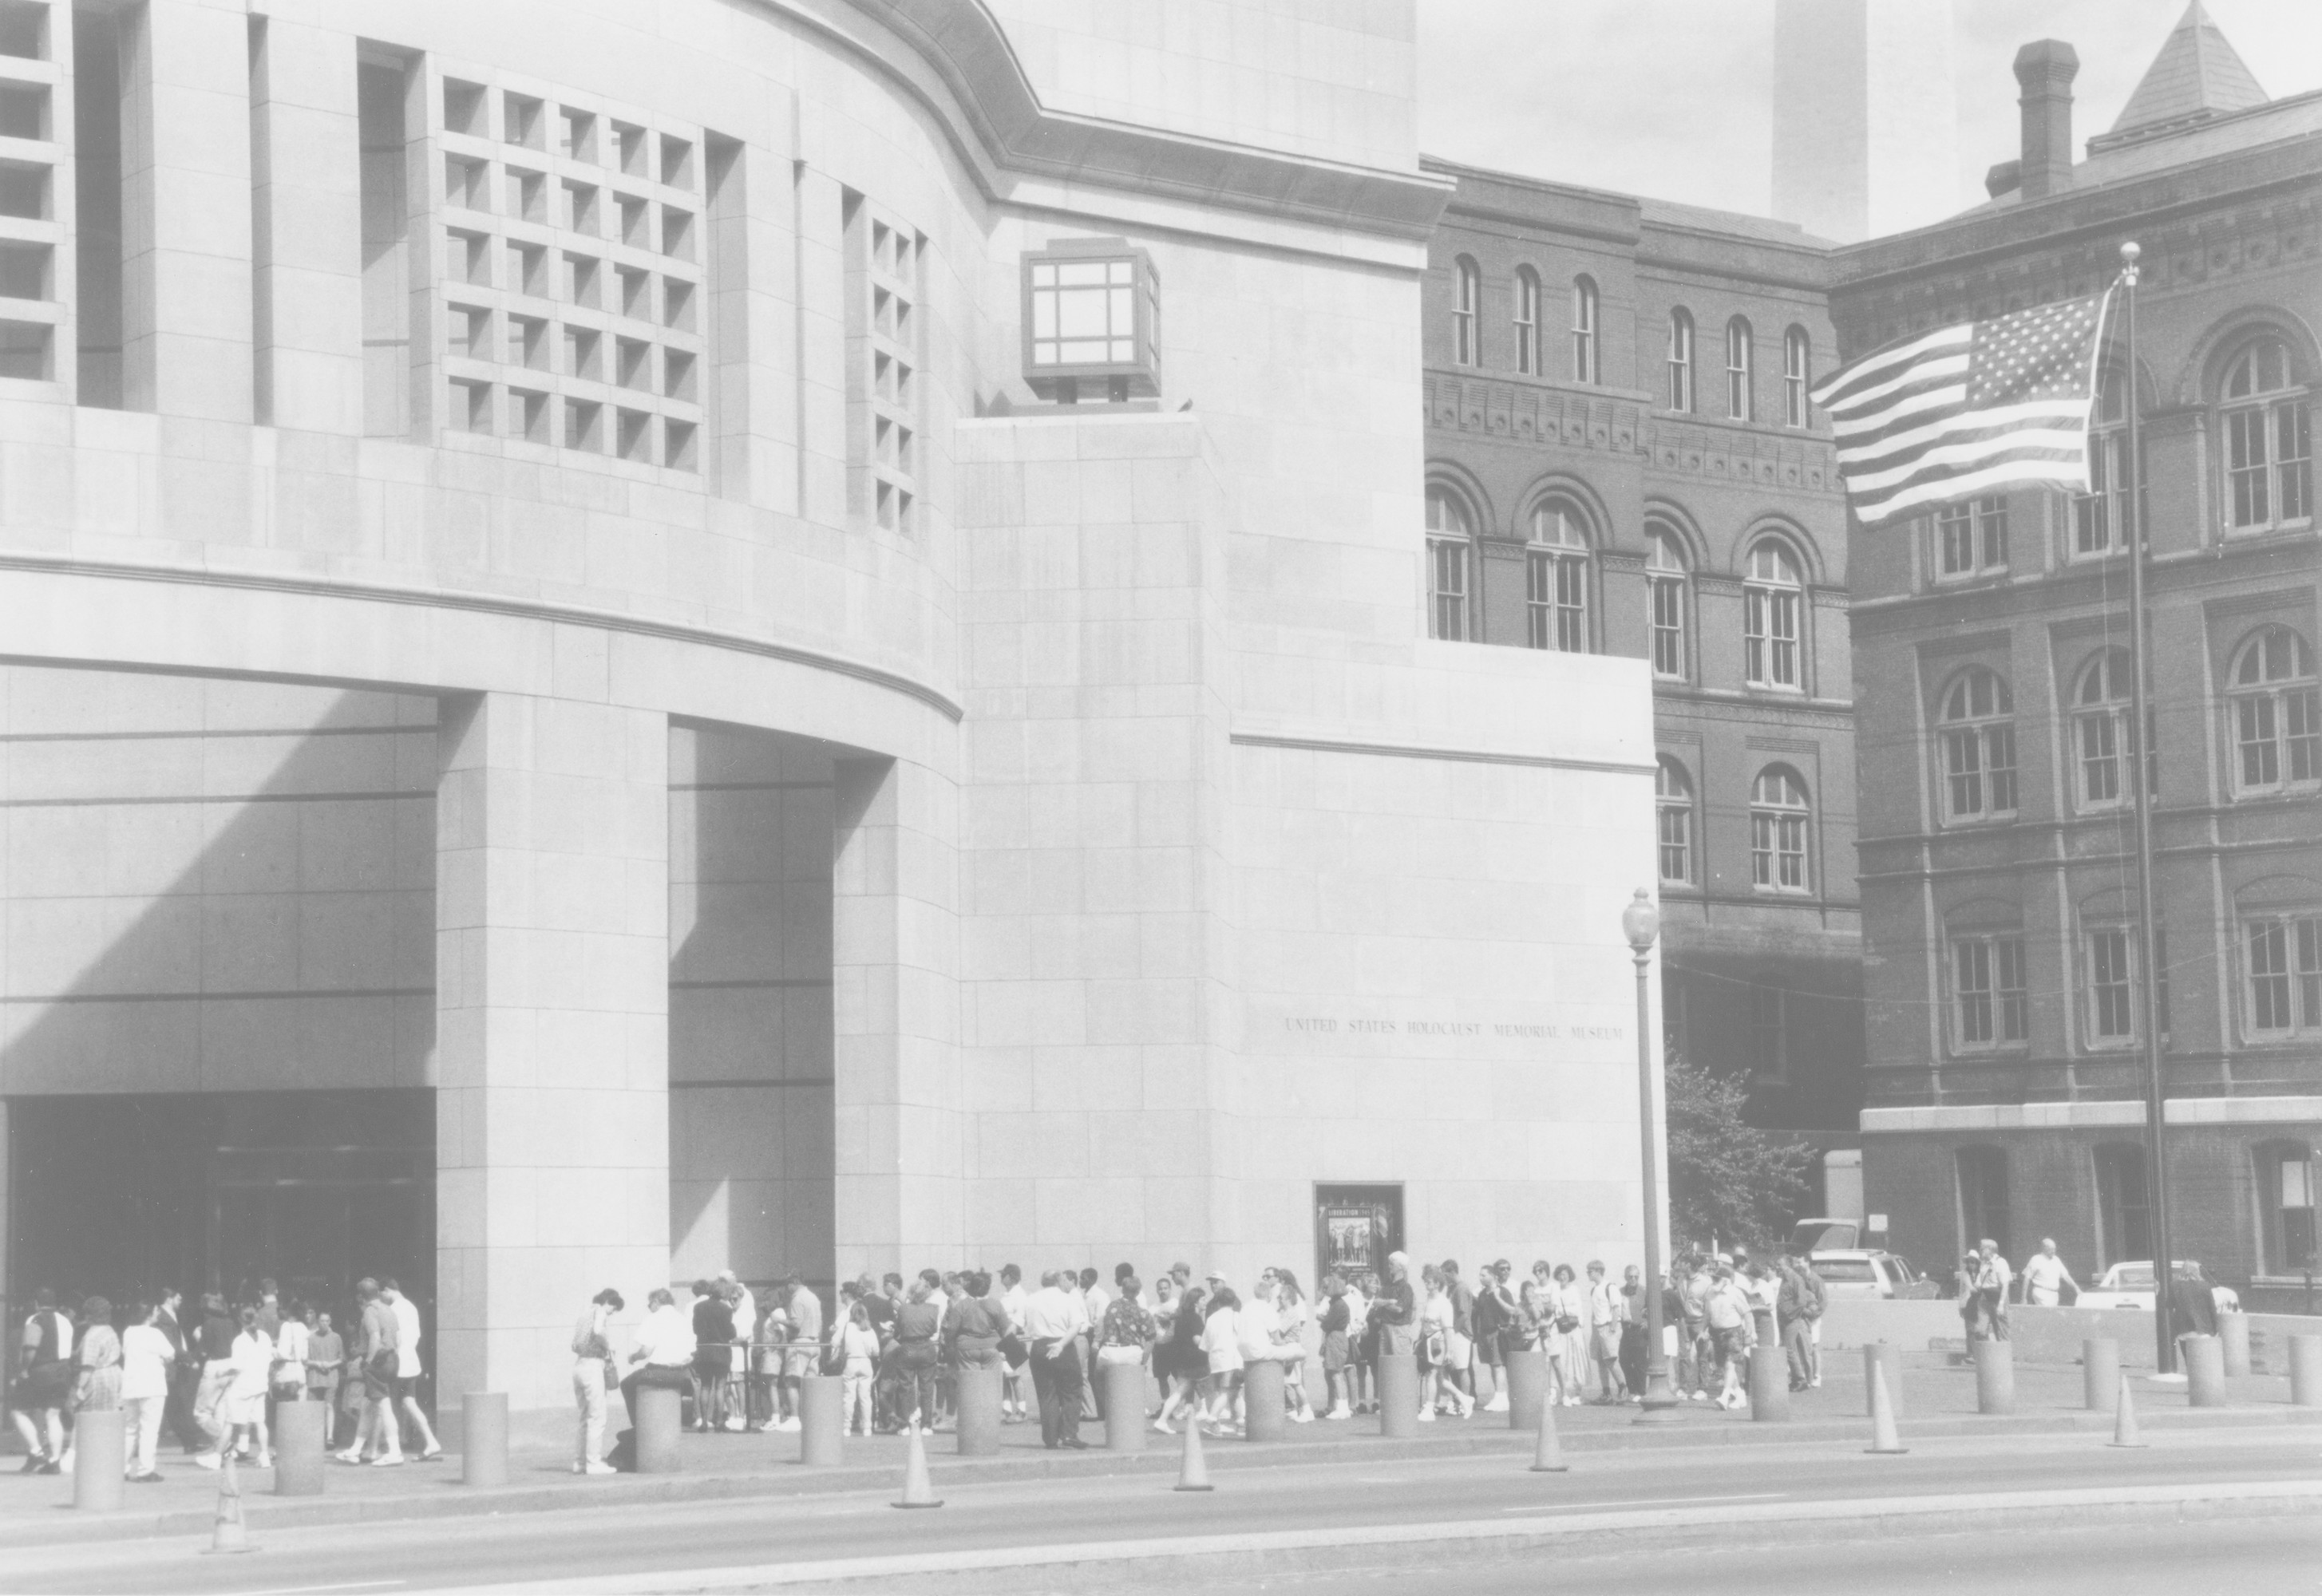 Visitors line up for tickets in front of the 14th Street entrance to the U.S. Holocaust Memorial Museum.